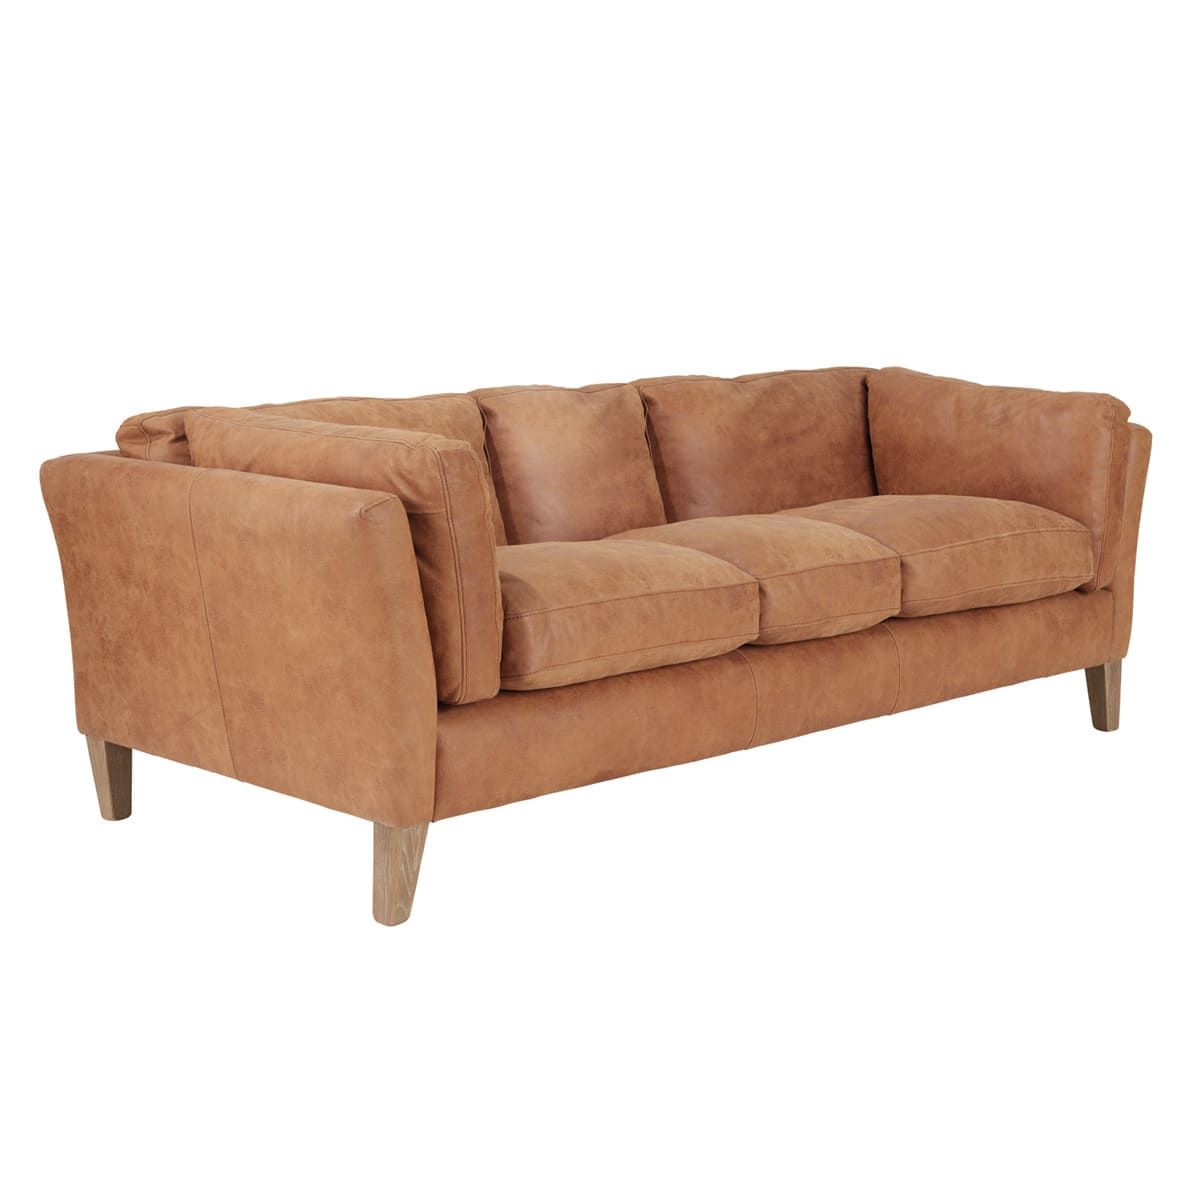 Marwick 3 Seater Sofa Furniture Sofa In 2019 Sofa 3 Seater